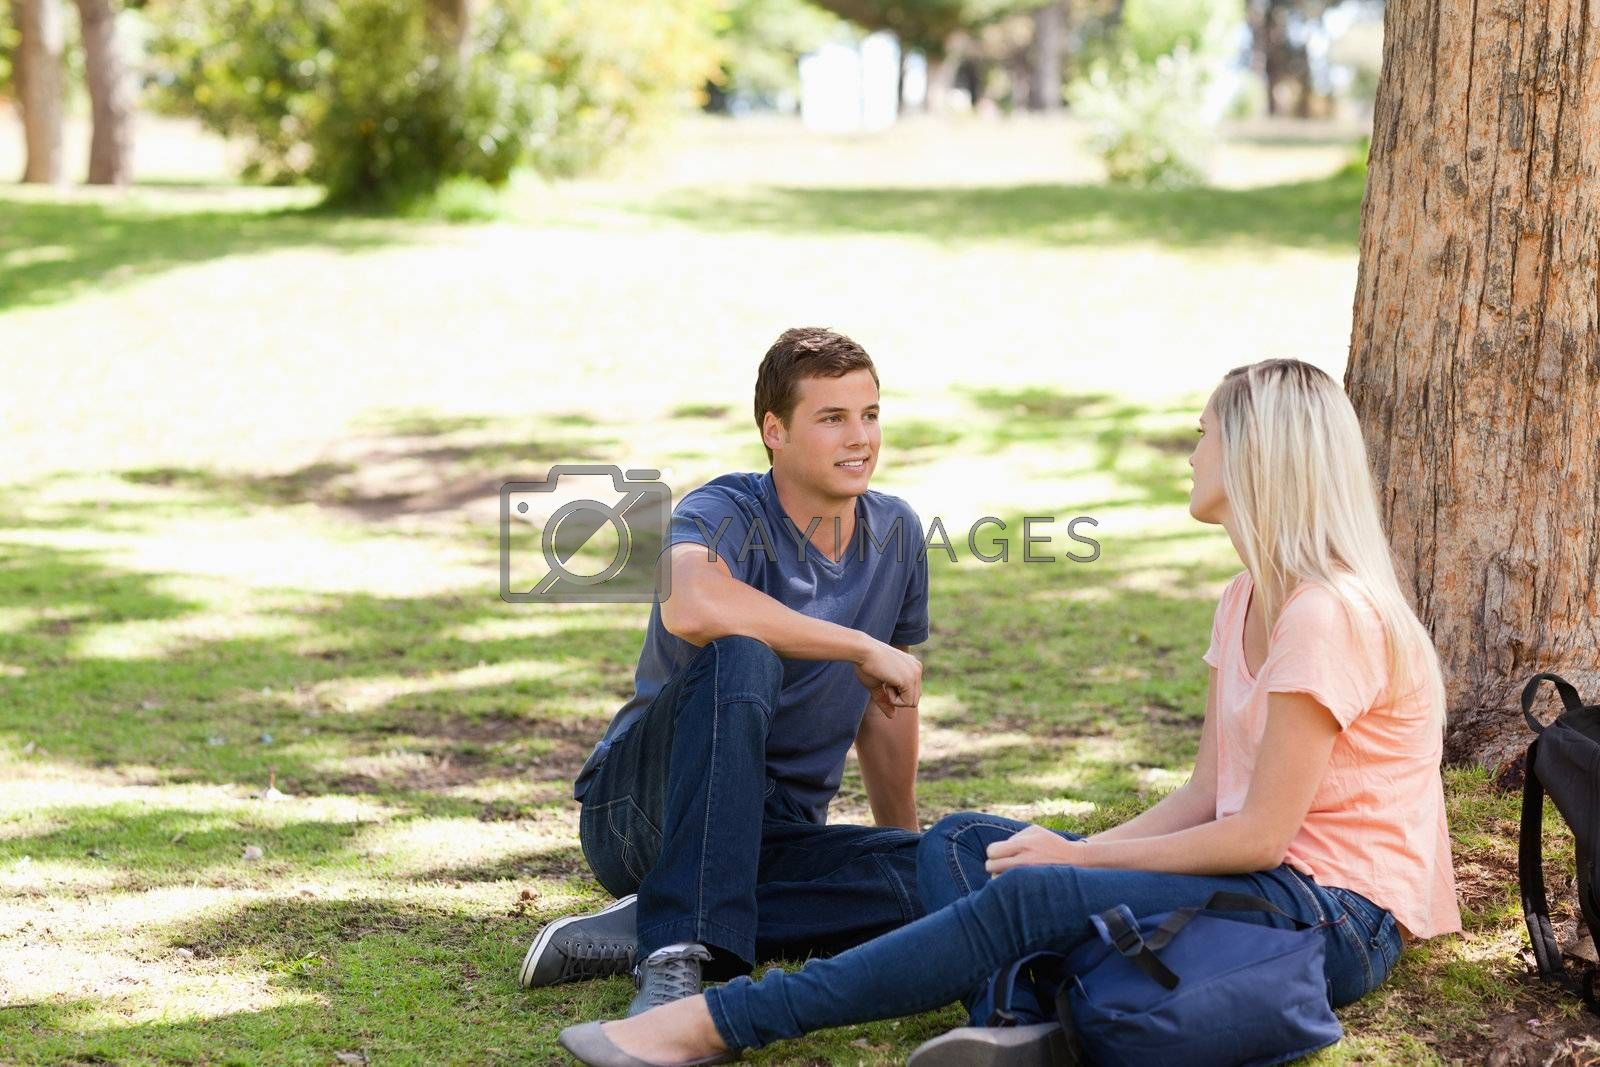 Young people flirting in a park